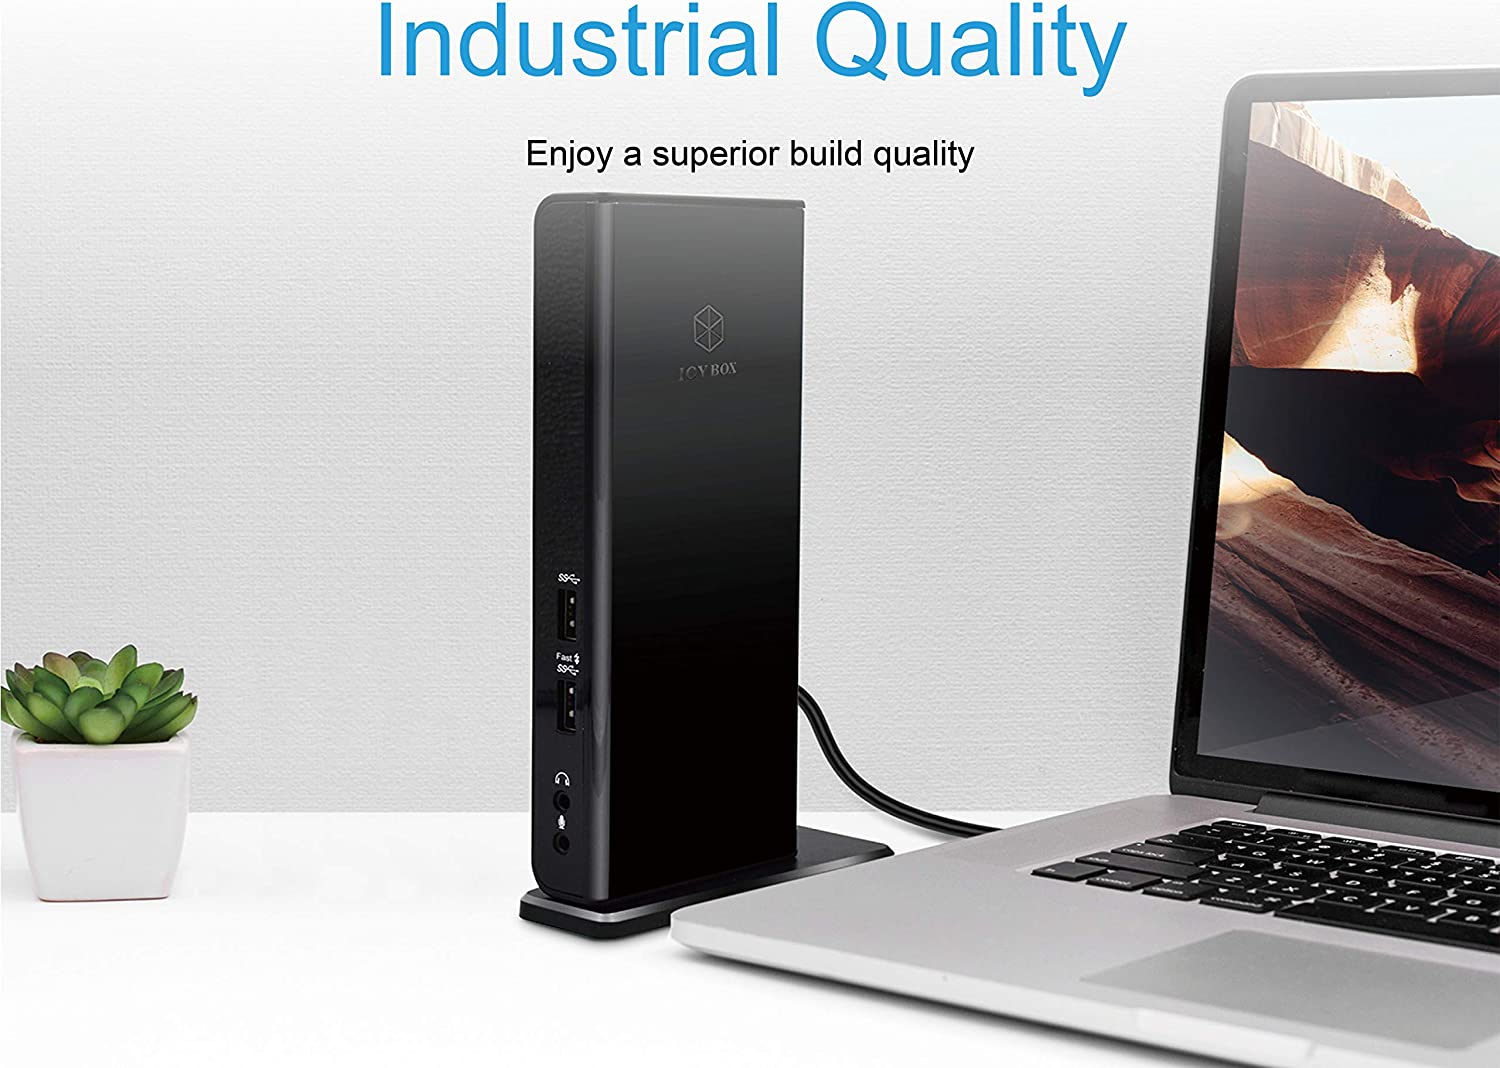 Dual Monitor Dock with USB B to A//C Cable ICY BOX USB 3.0 Universal Laptop Docking Station for Windows//Mac Dual HDMI, Gigabit Ethernet, Audio, 4 USB Ports